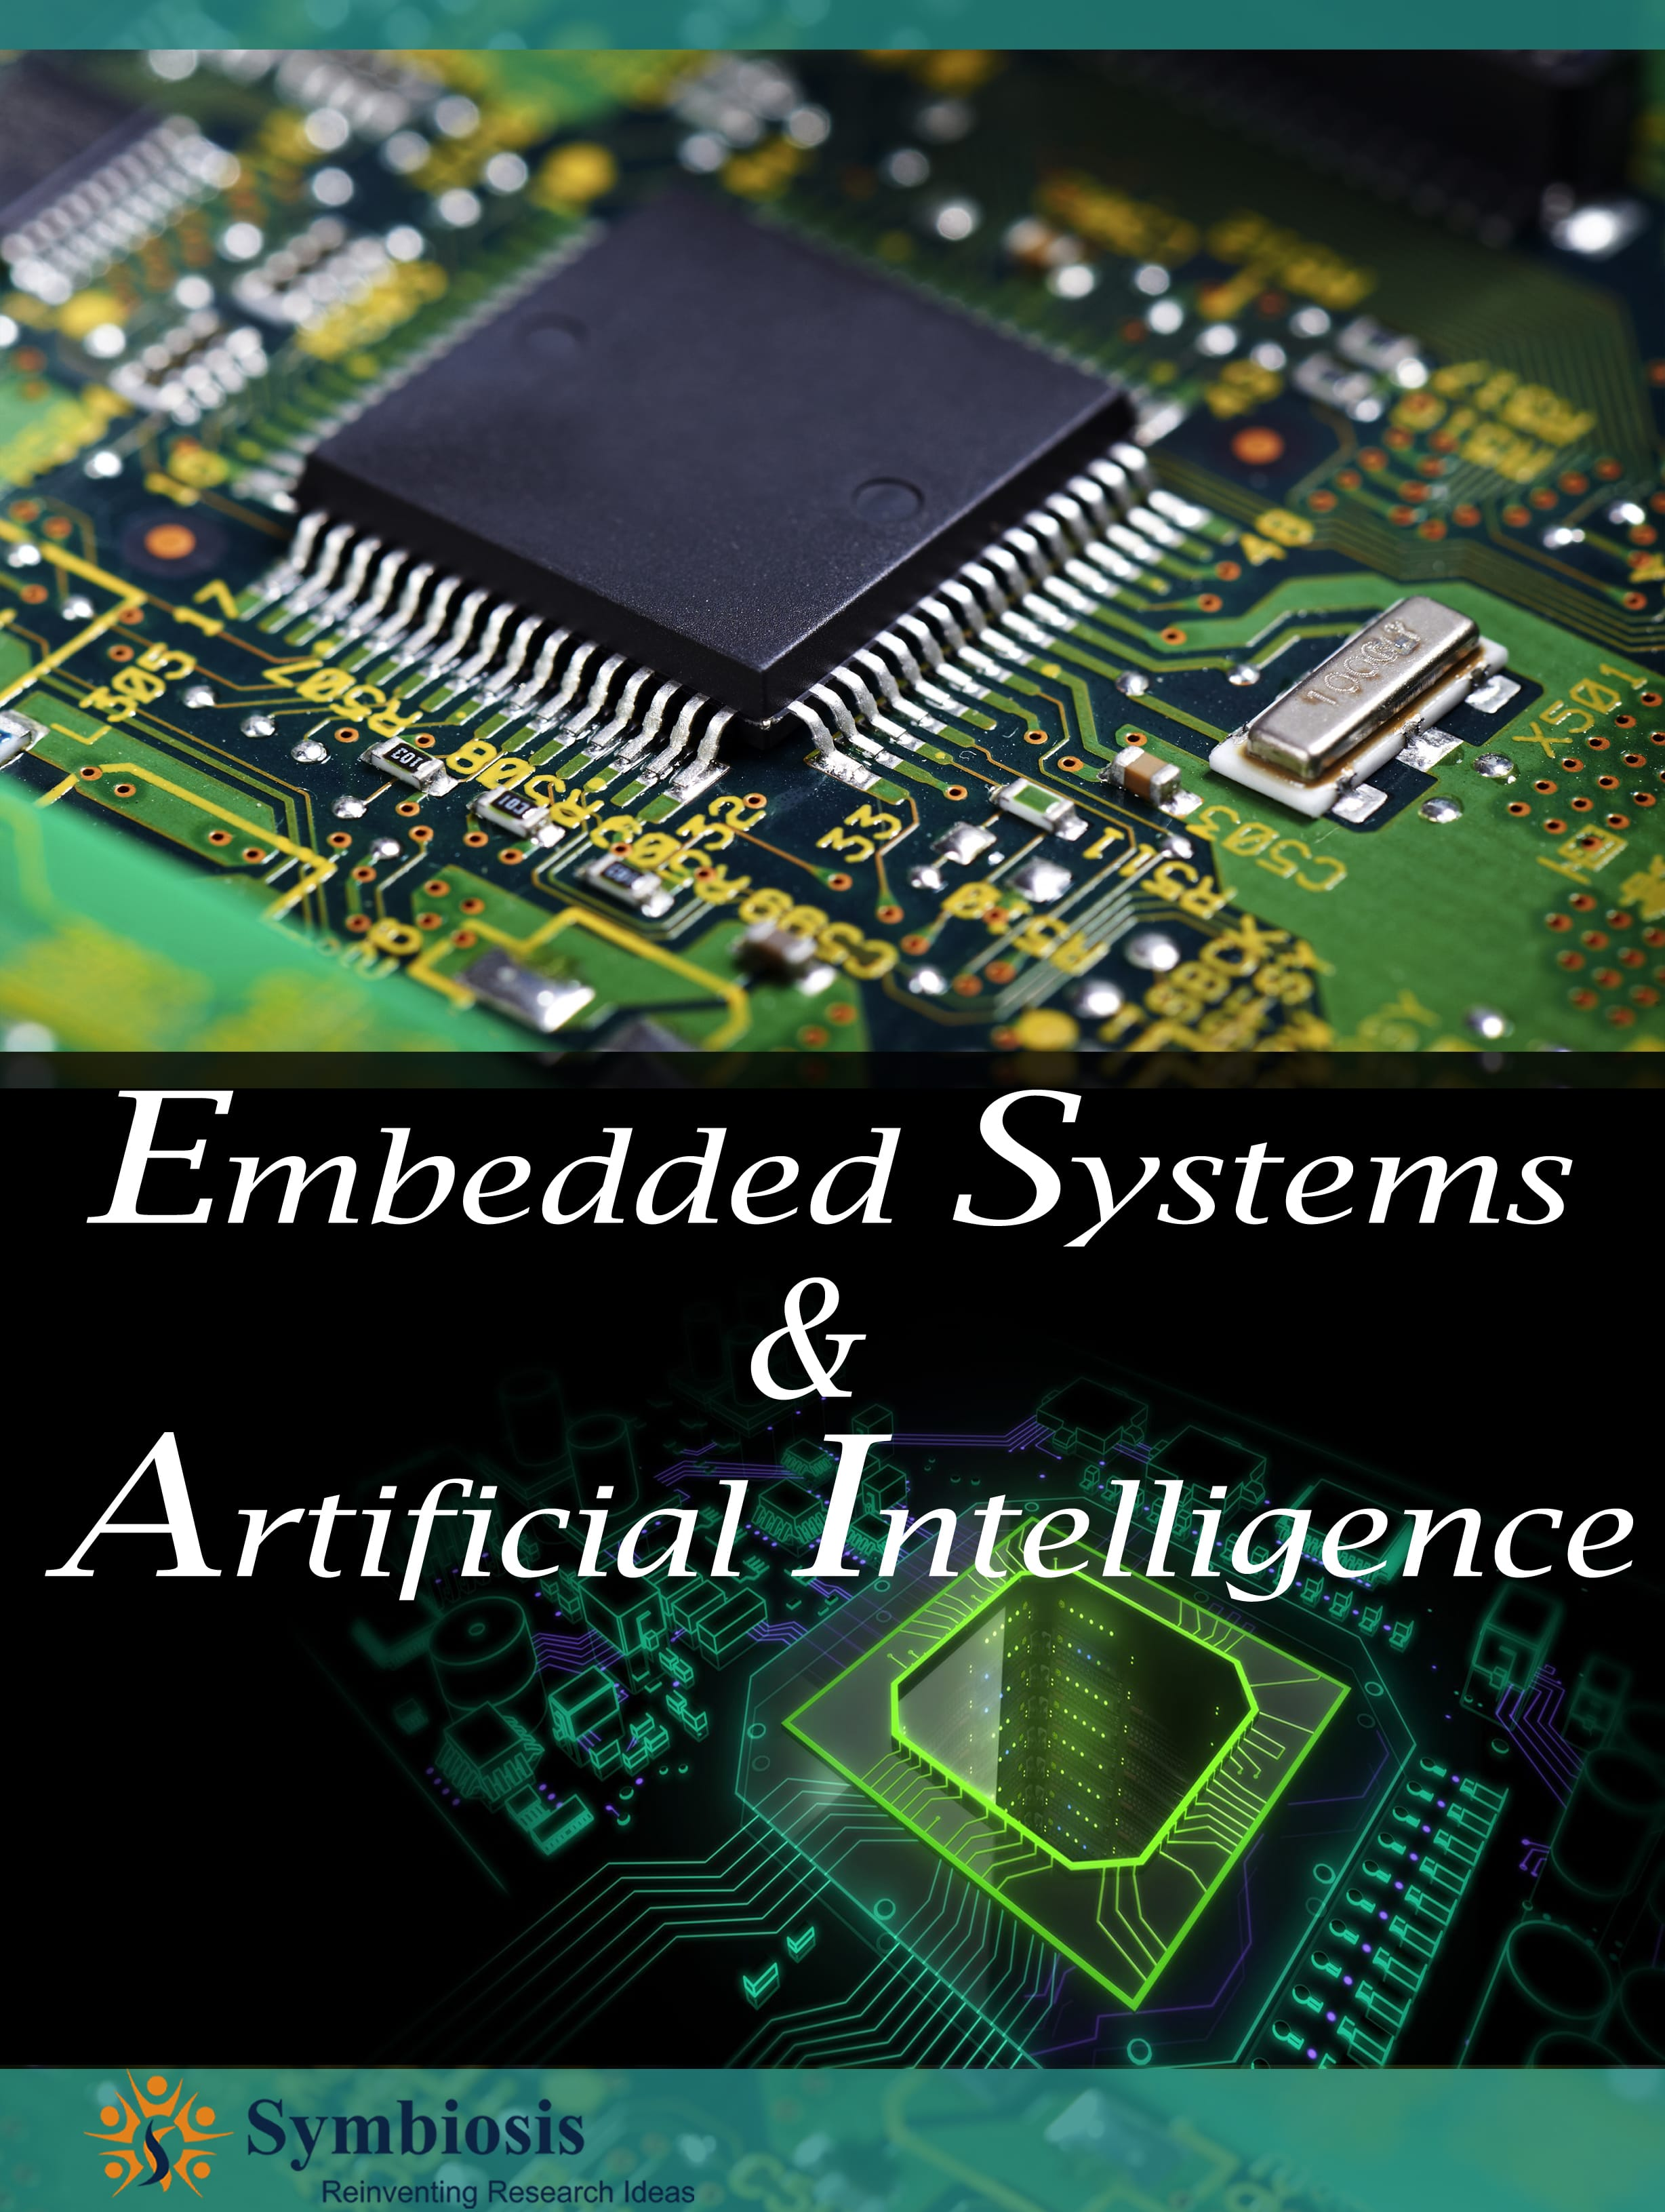 journal of embedded systems